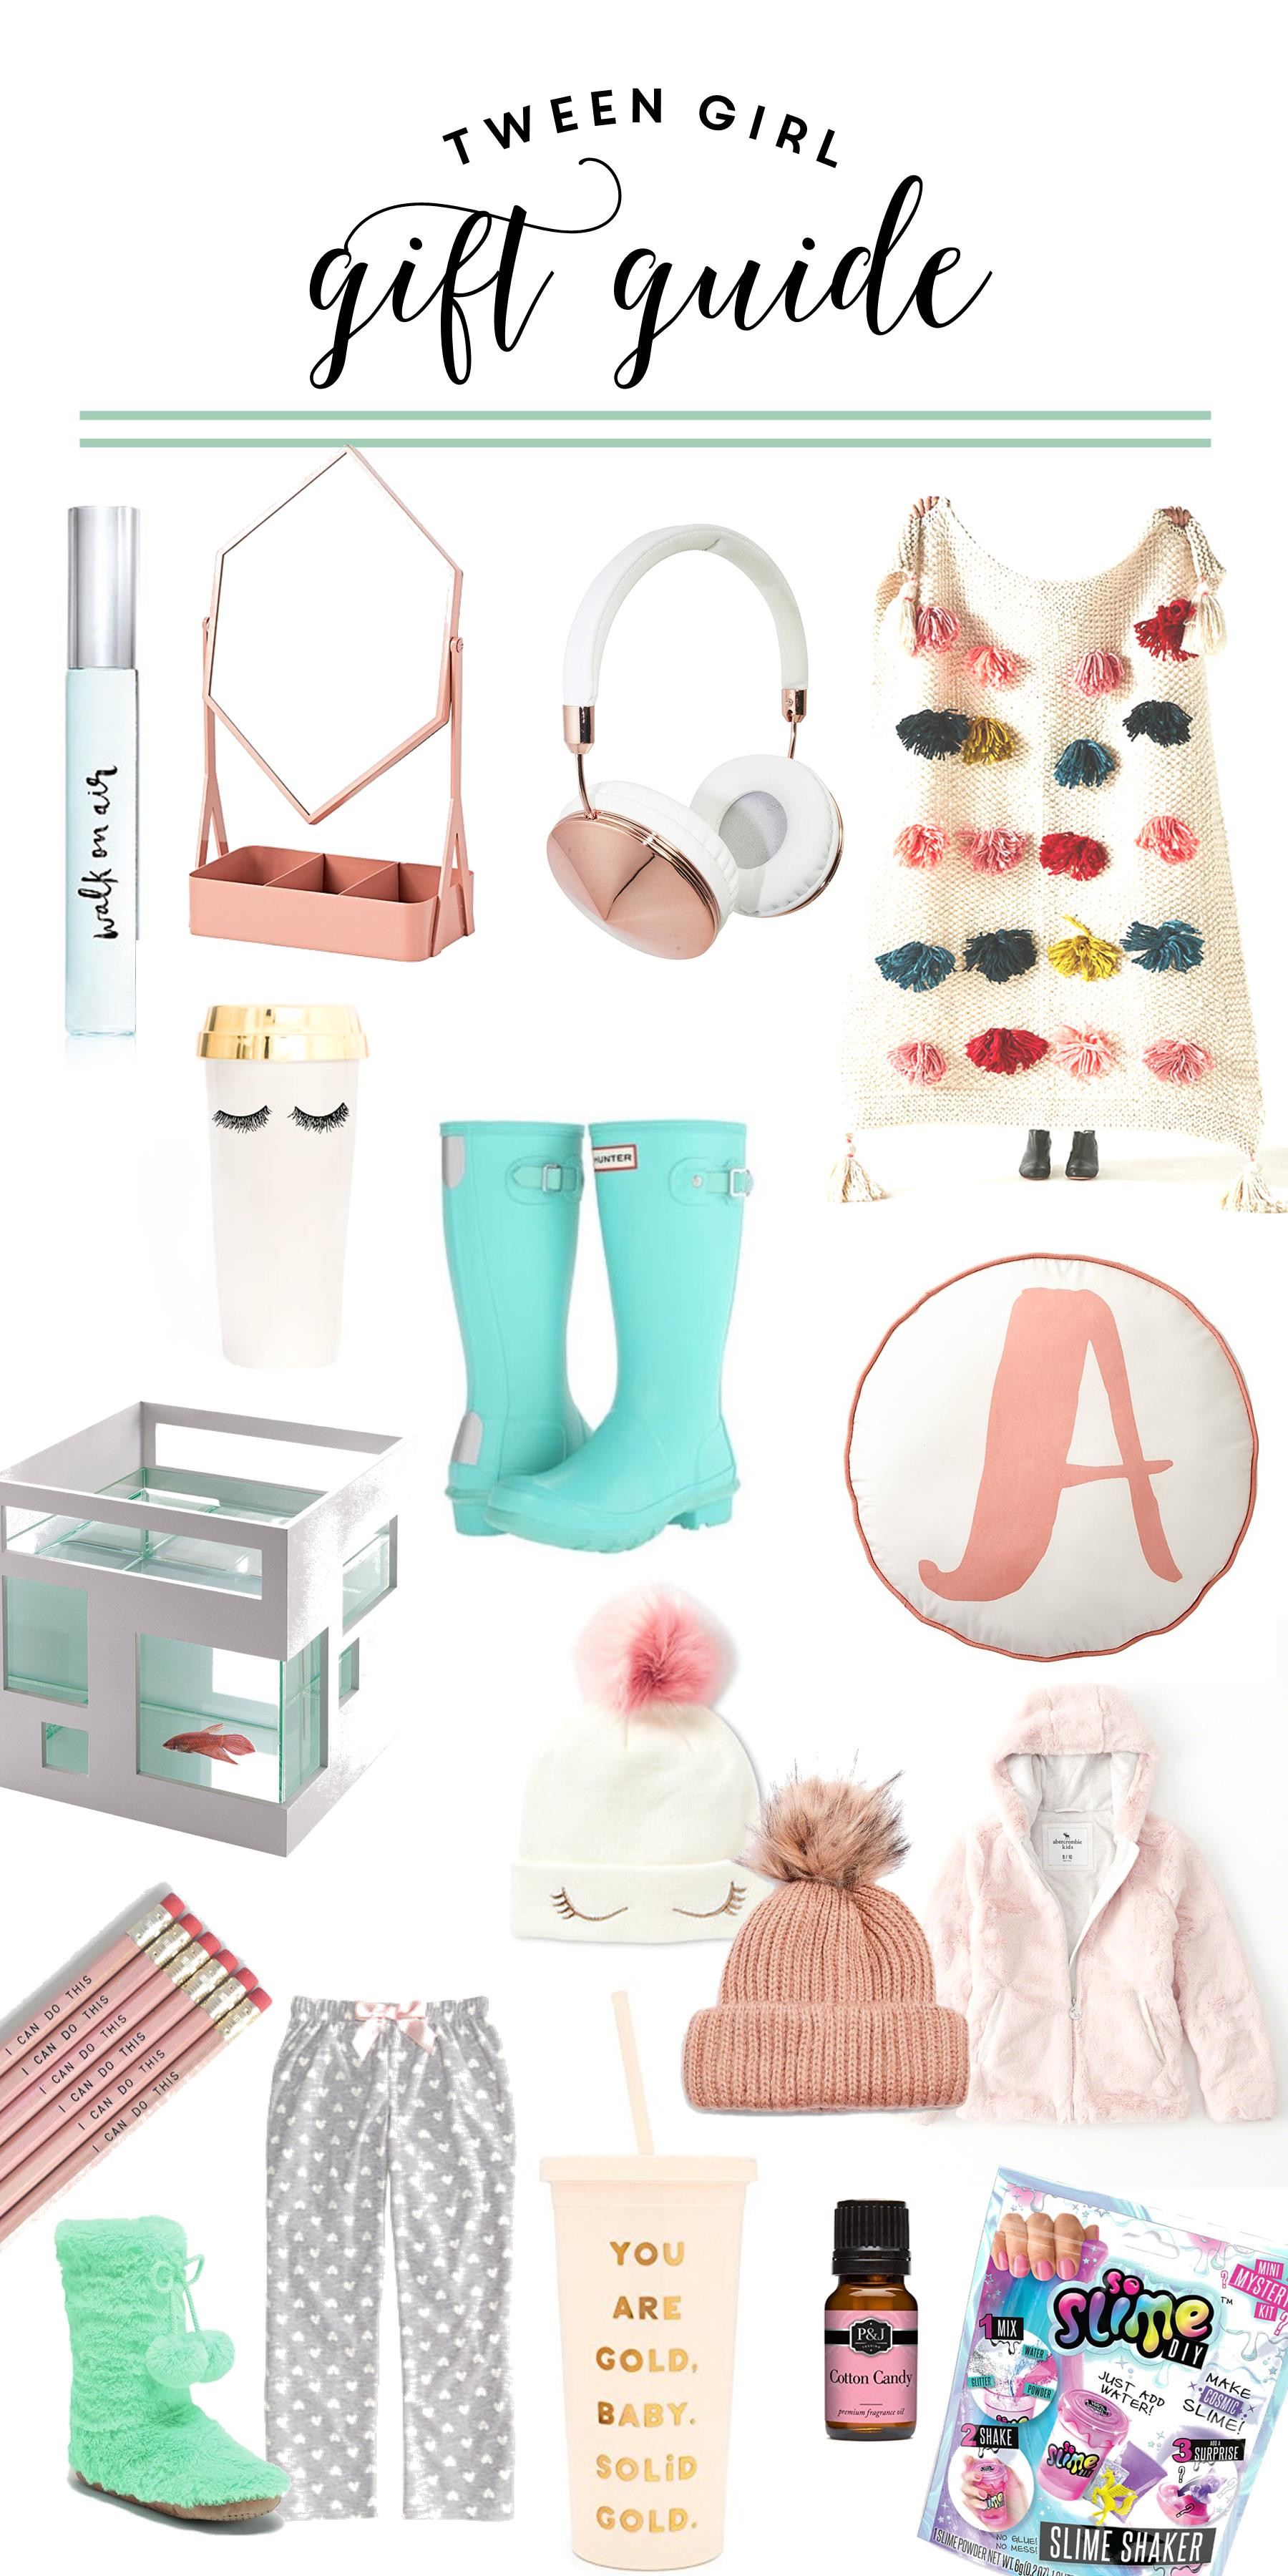 Best ideas about Tween Gift Ideas Girls . Save or Pin Tween Girl Gift Ideas by Annabelle Now.